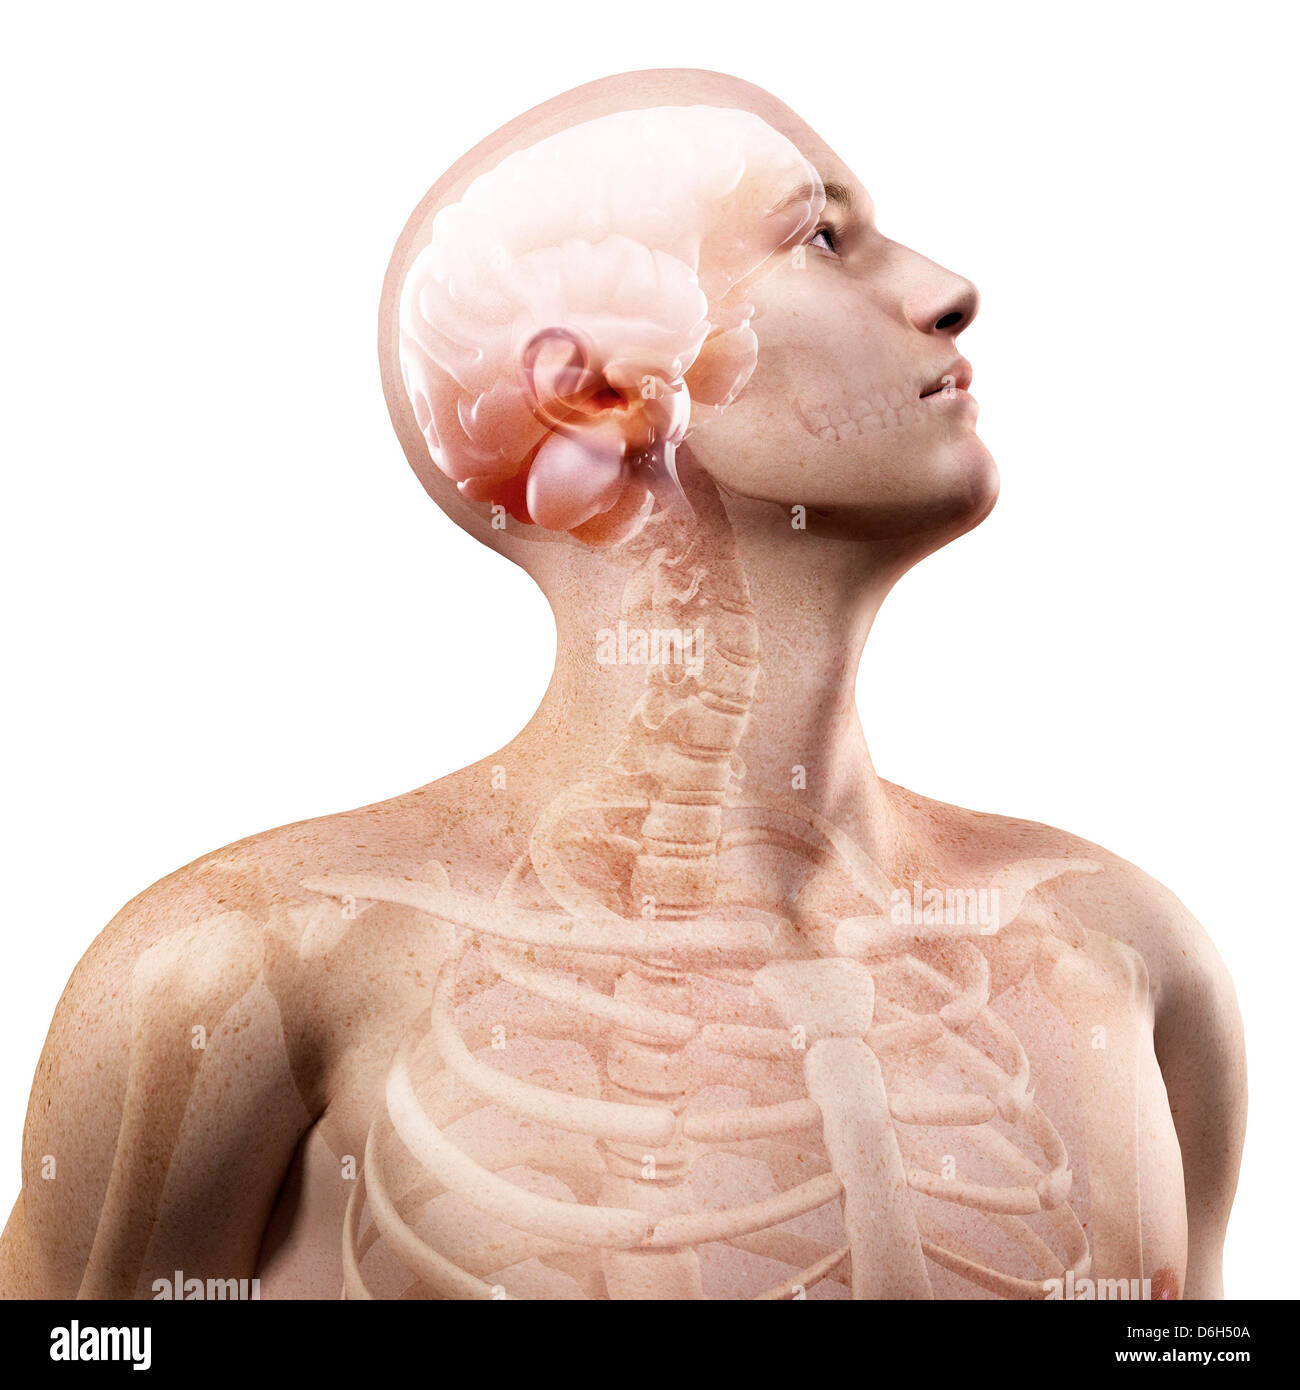 Side View Of Head And Upper Body Stock Photos & Side View Of Head ...